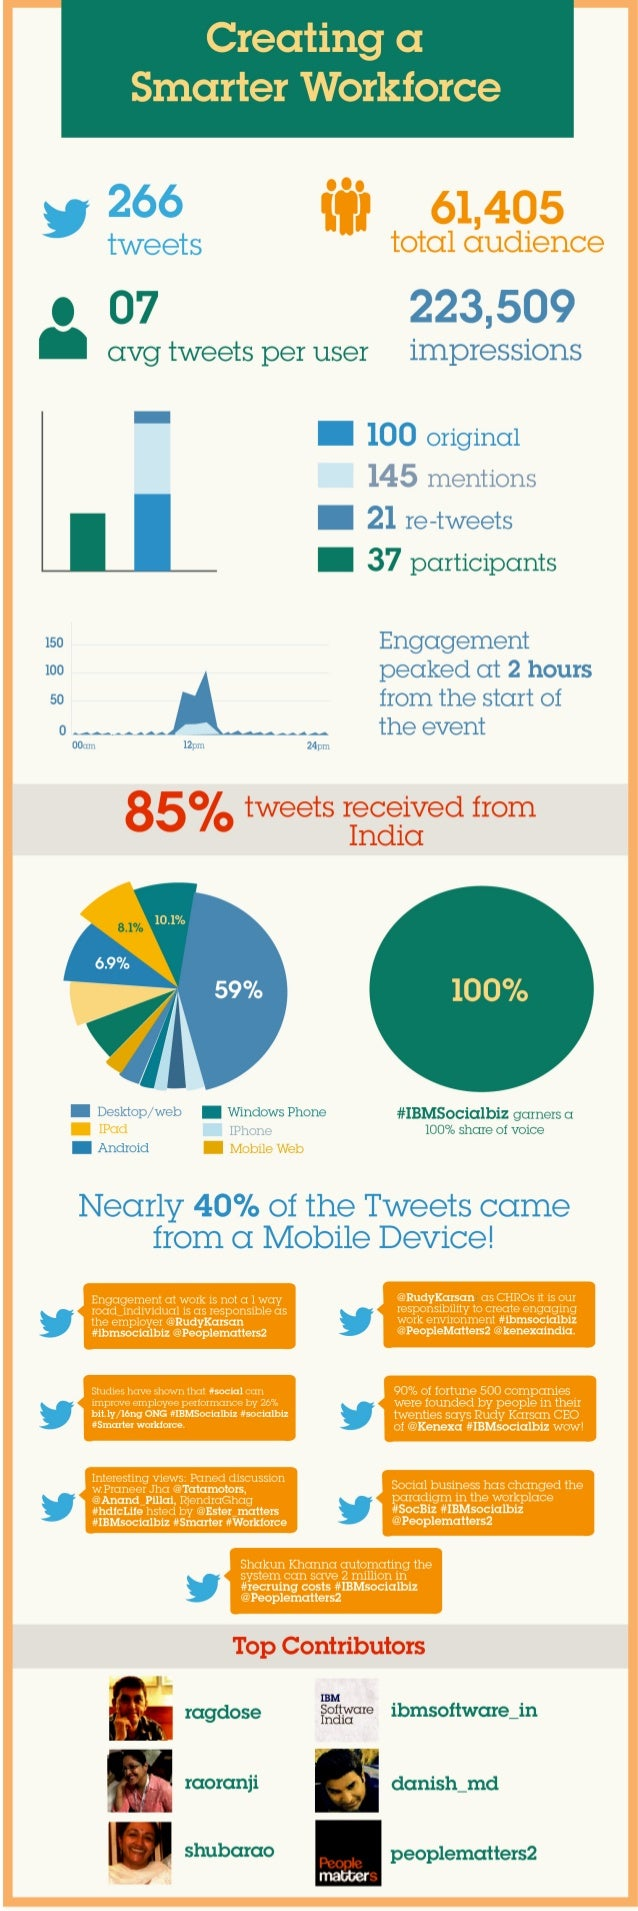 Creating a smarter workforce twitter chat infographic